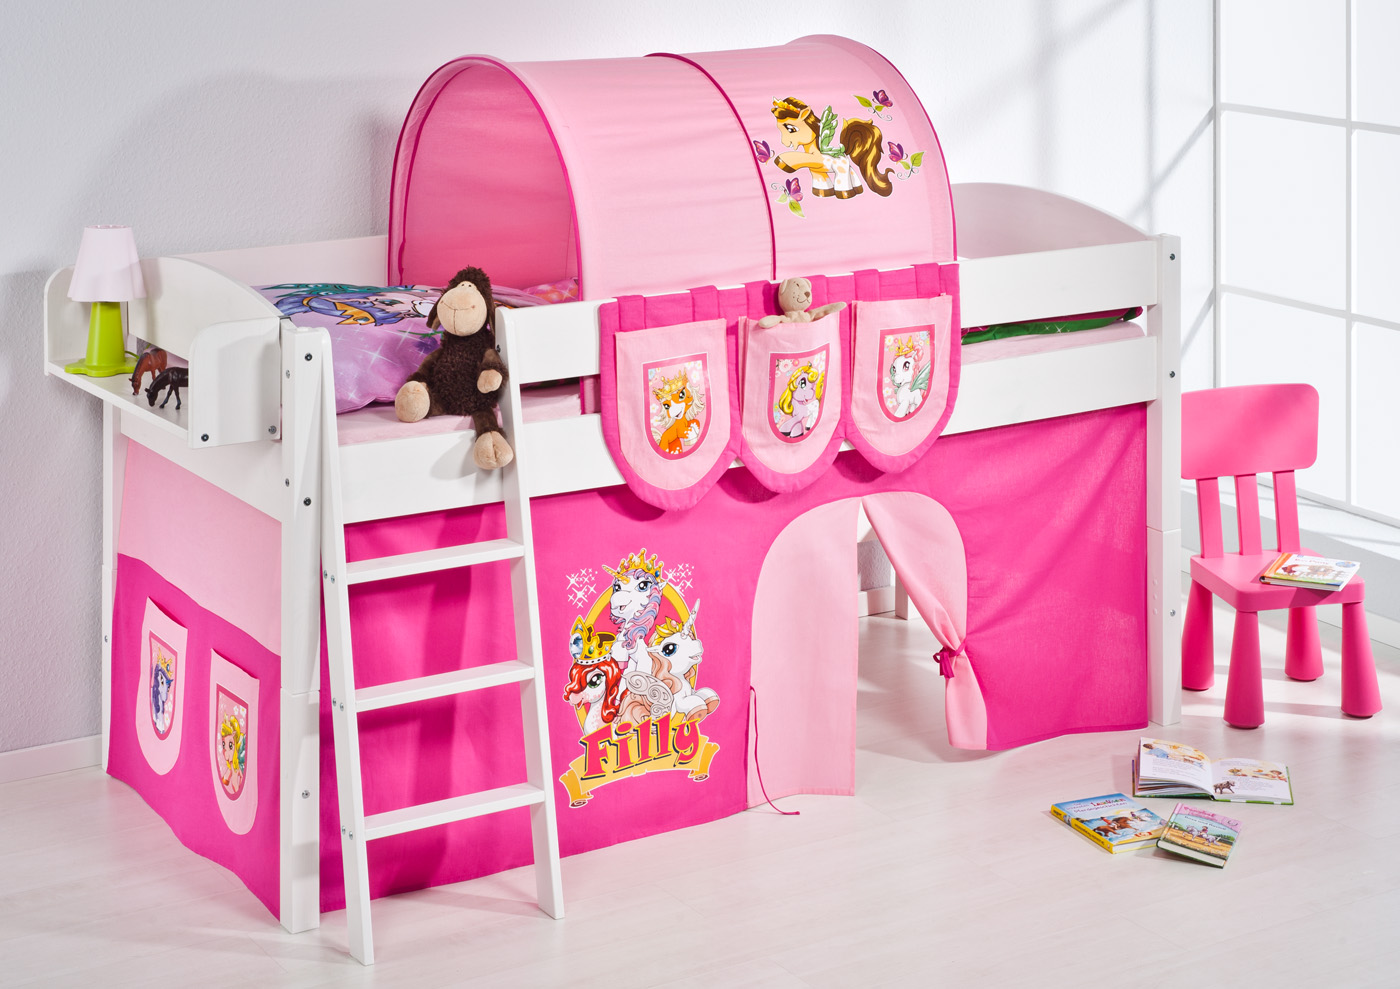 spielbett hochbett kinderbett kinder bett umbaubar zum einzelbett 4105 ebay. Black Bedroom Furniture Sets. Home Design Ideas